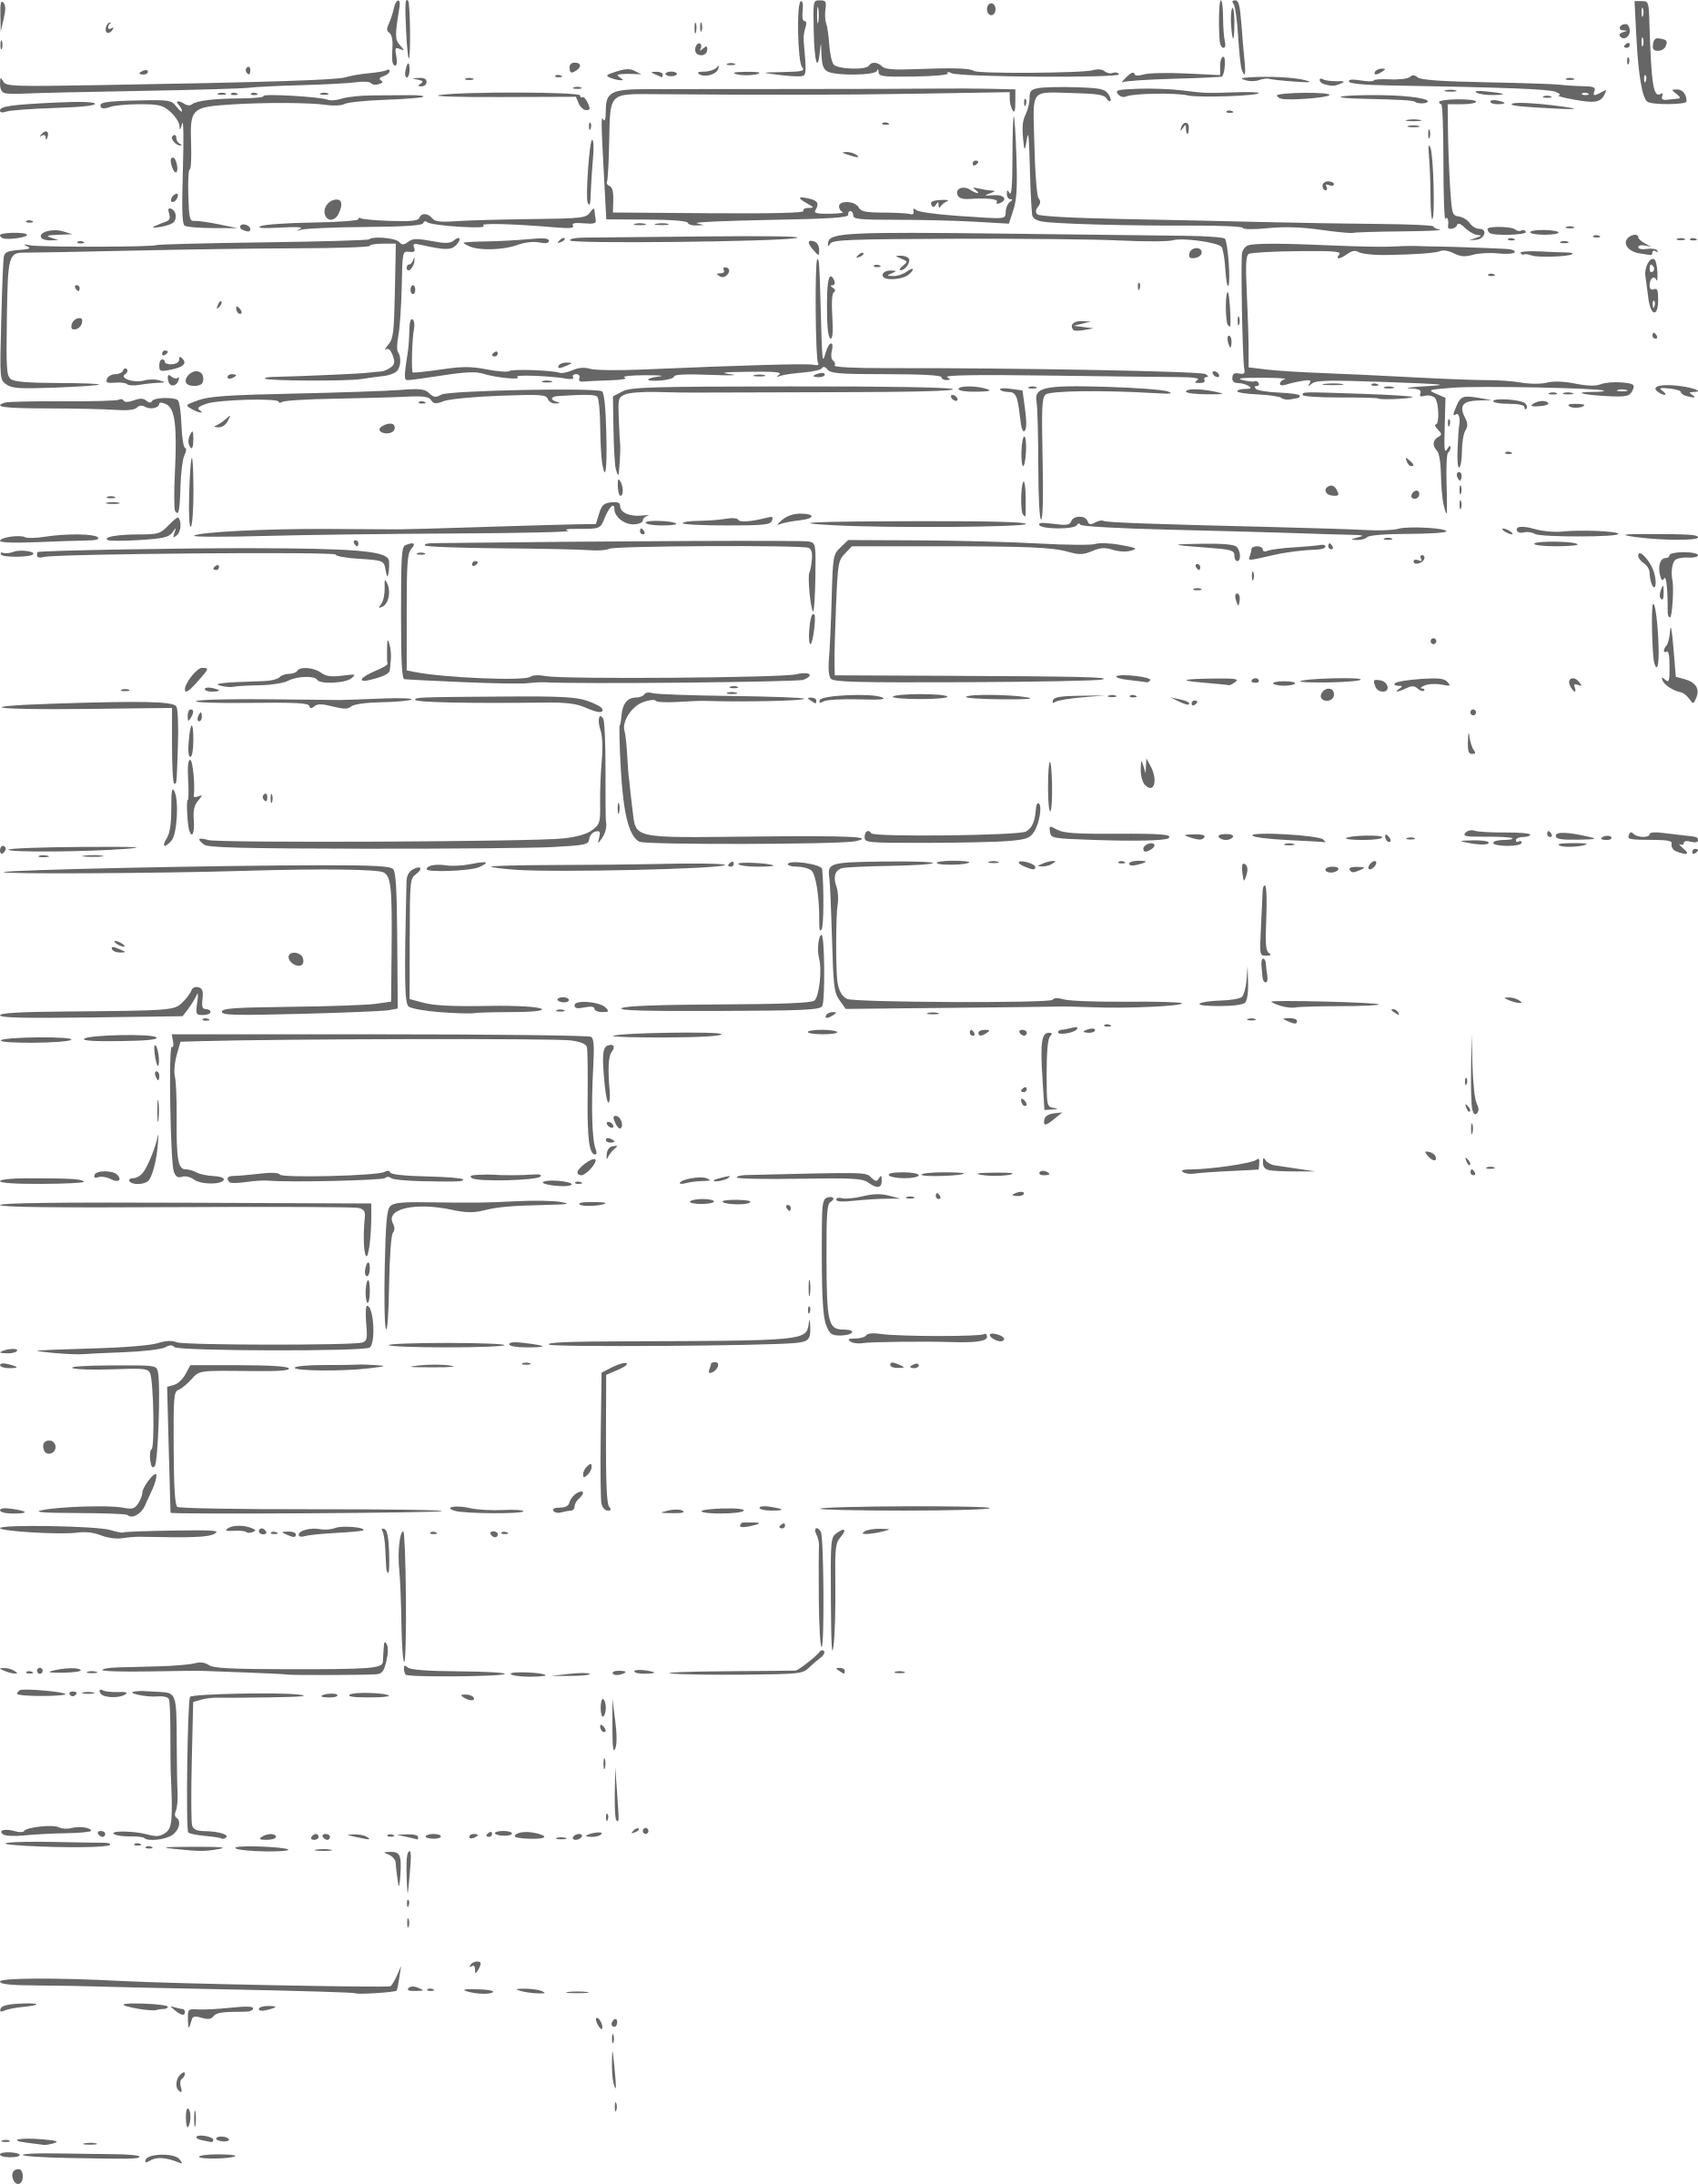 BIG IMAGE (PNG) - Wall PNG Black And White